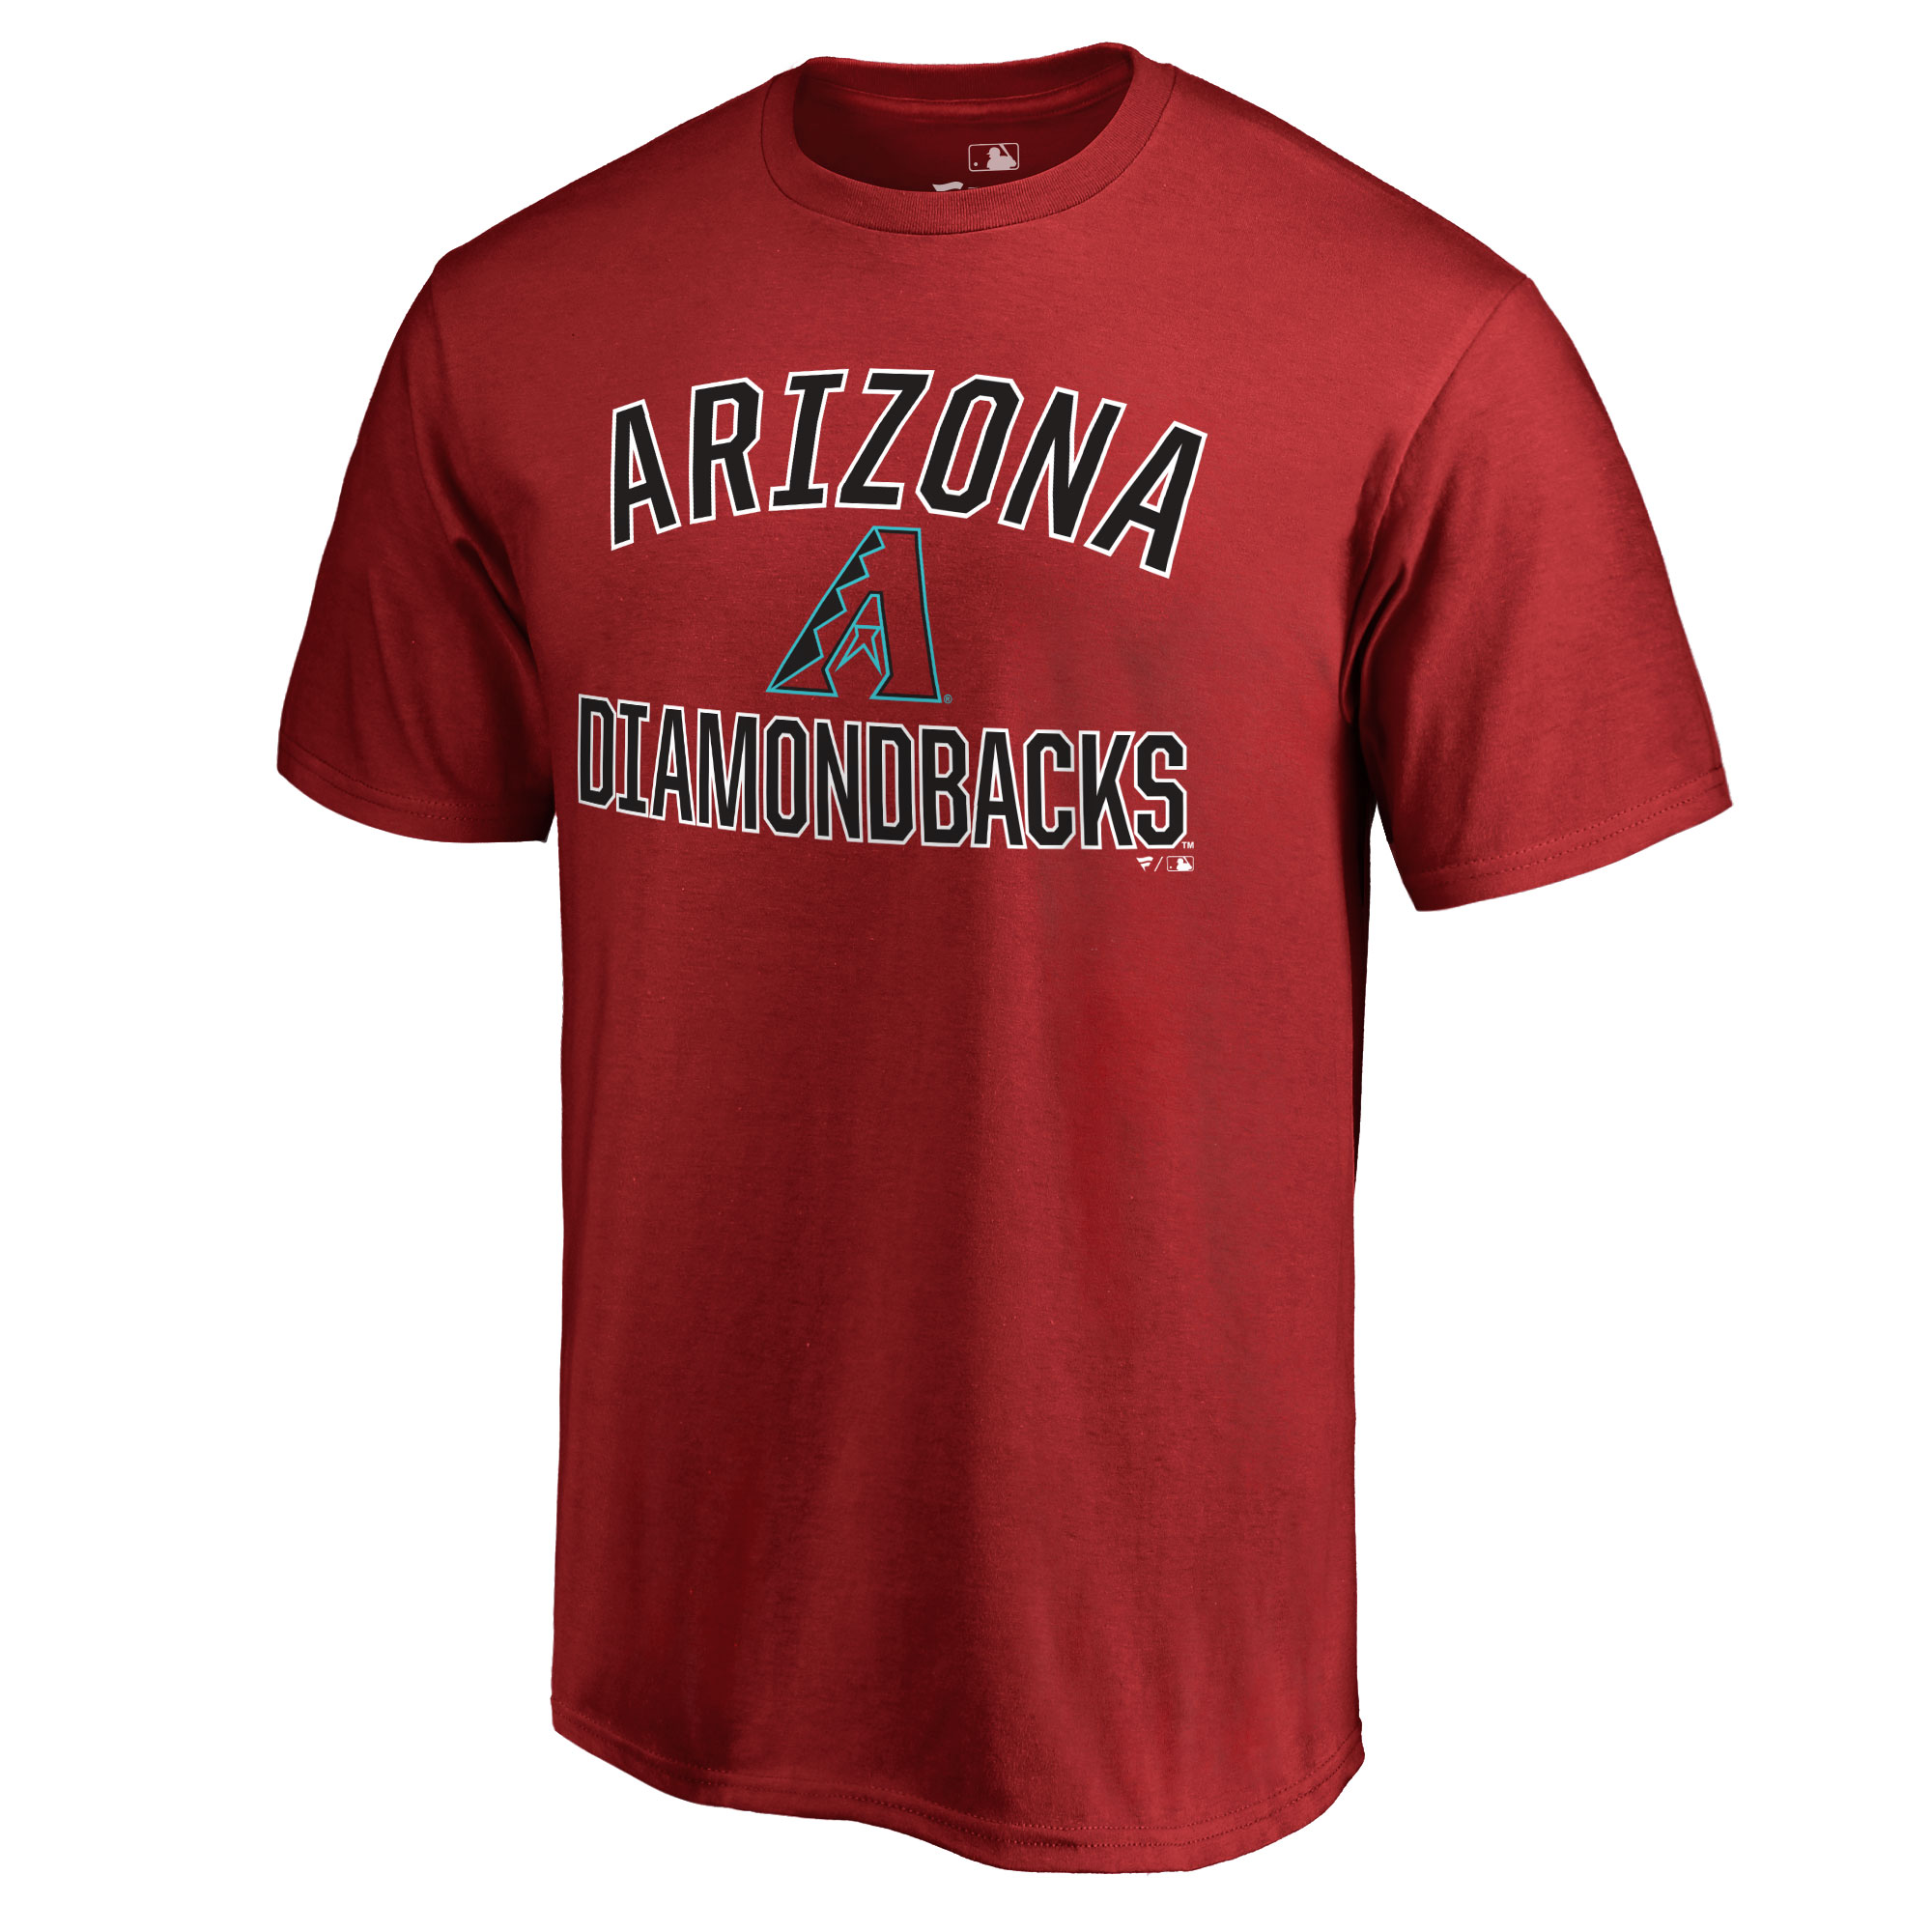 Arizona Diamondbacks Victory Arch T-Shirt - Red